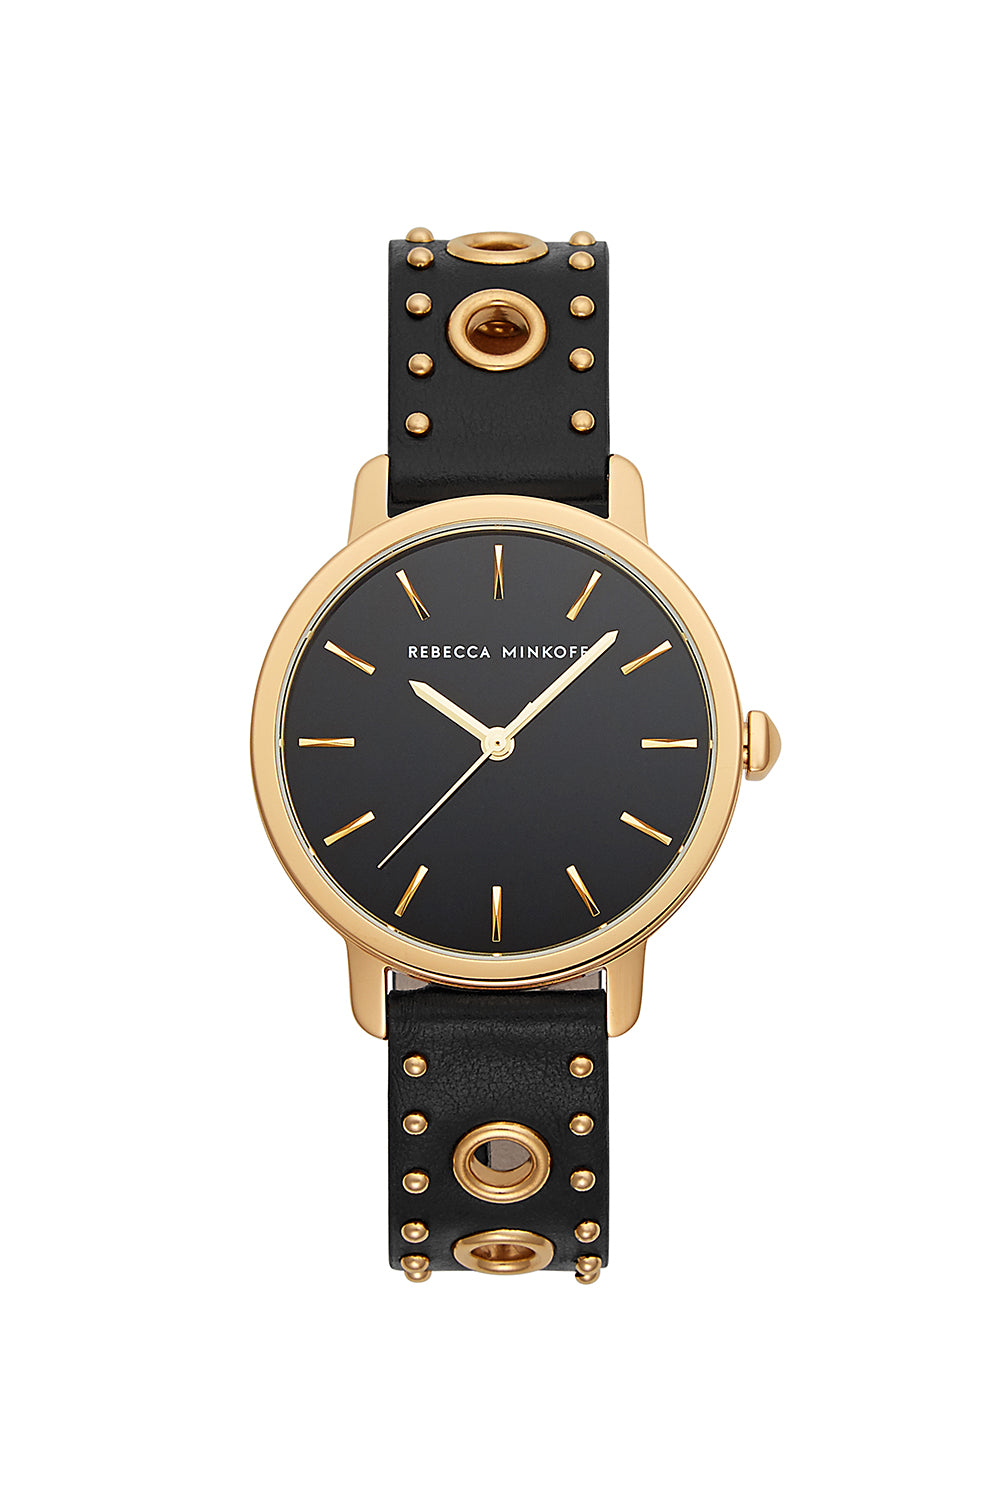 Rebecca-Minkoff BFFL Gold Tone Black Leather Strap Watch, 36MM